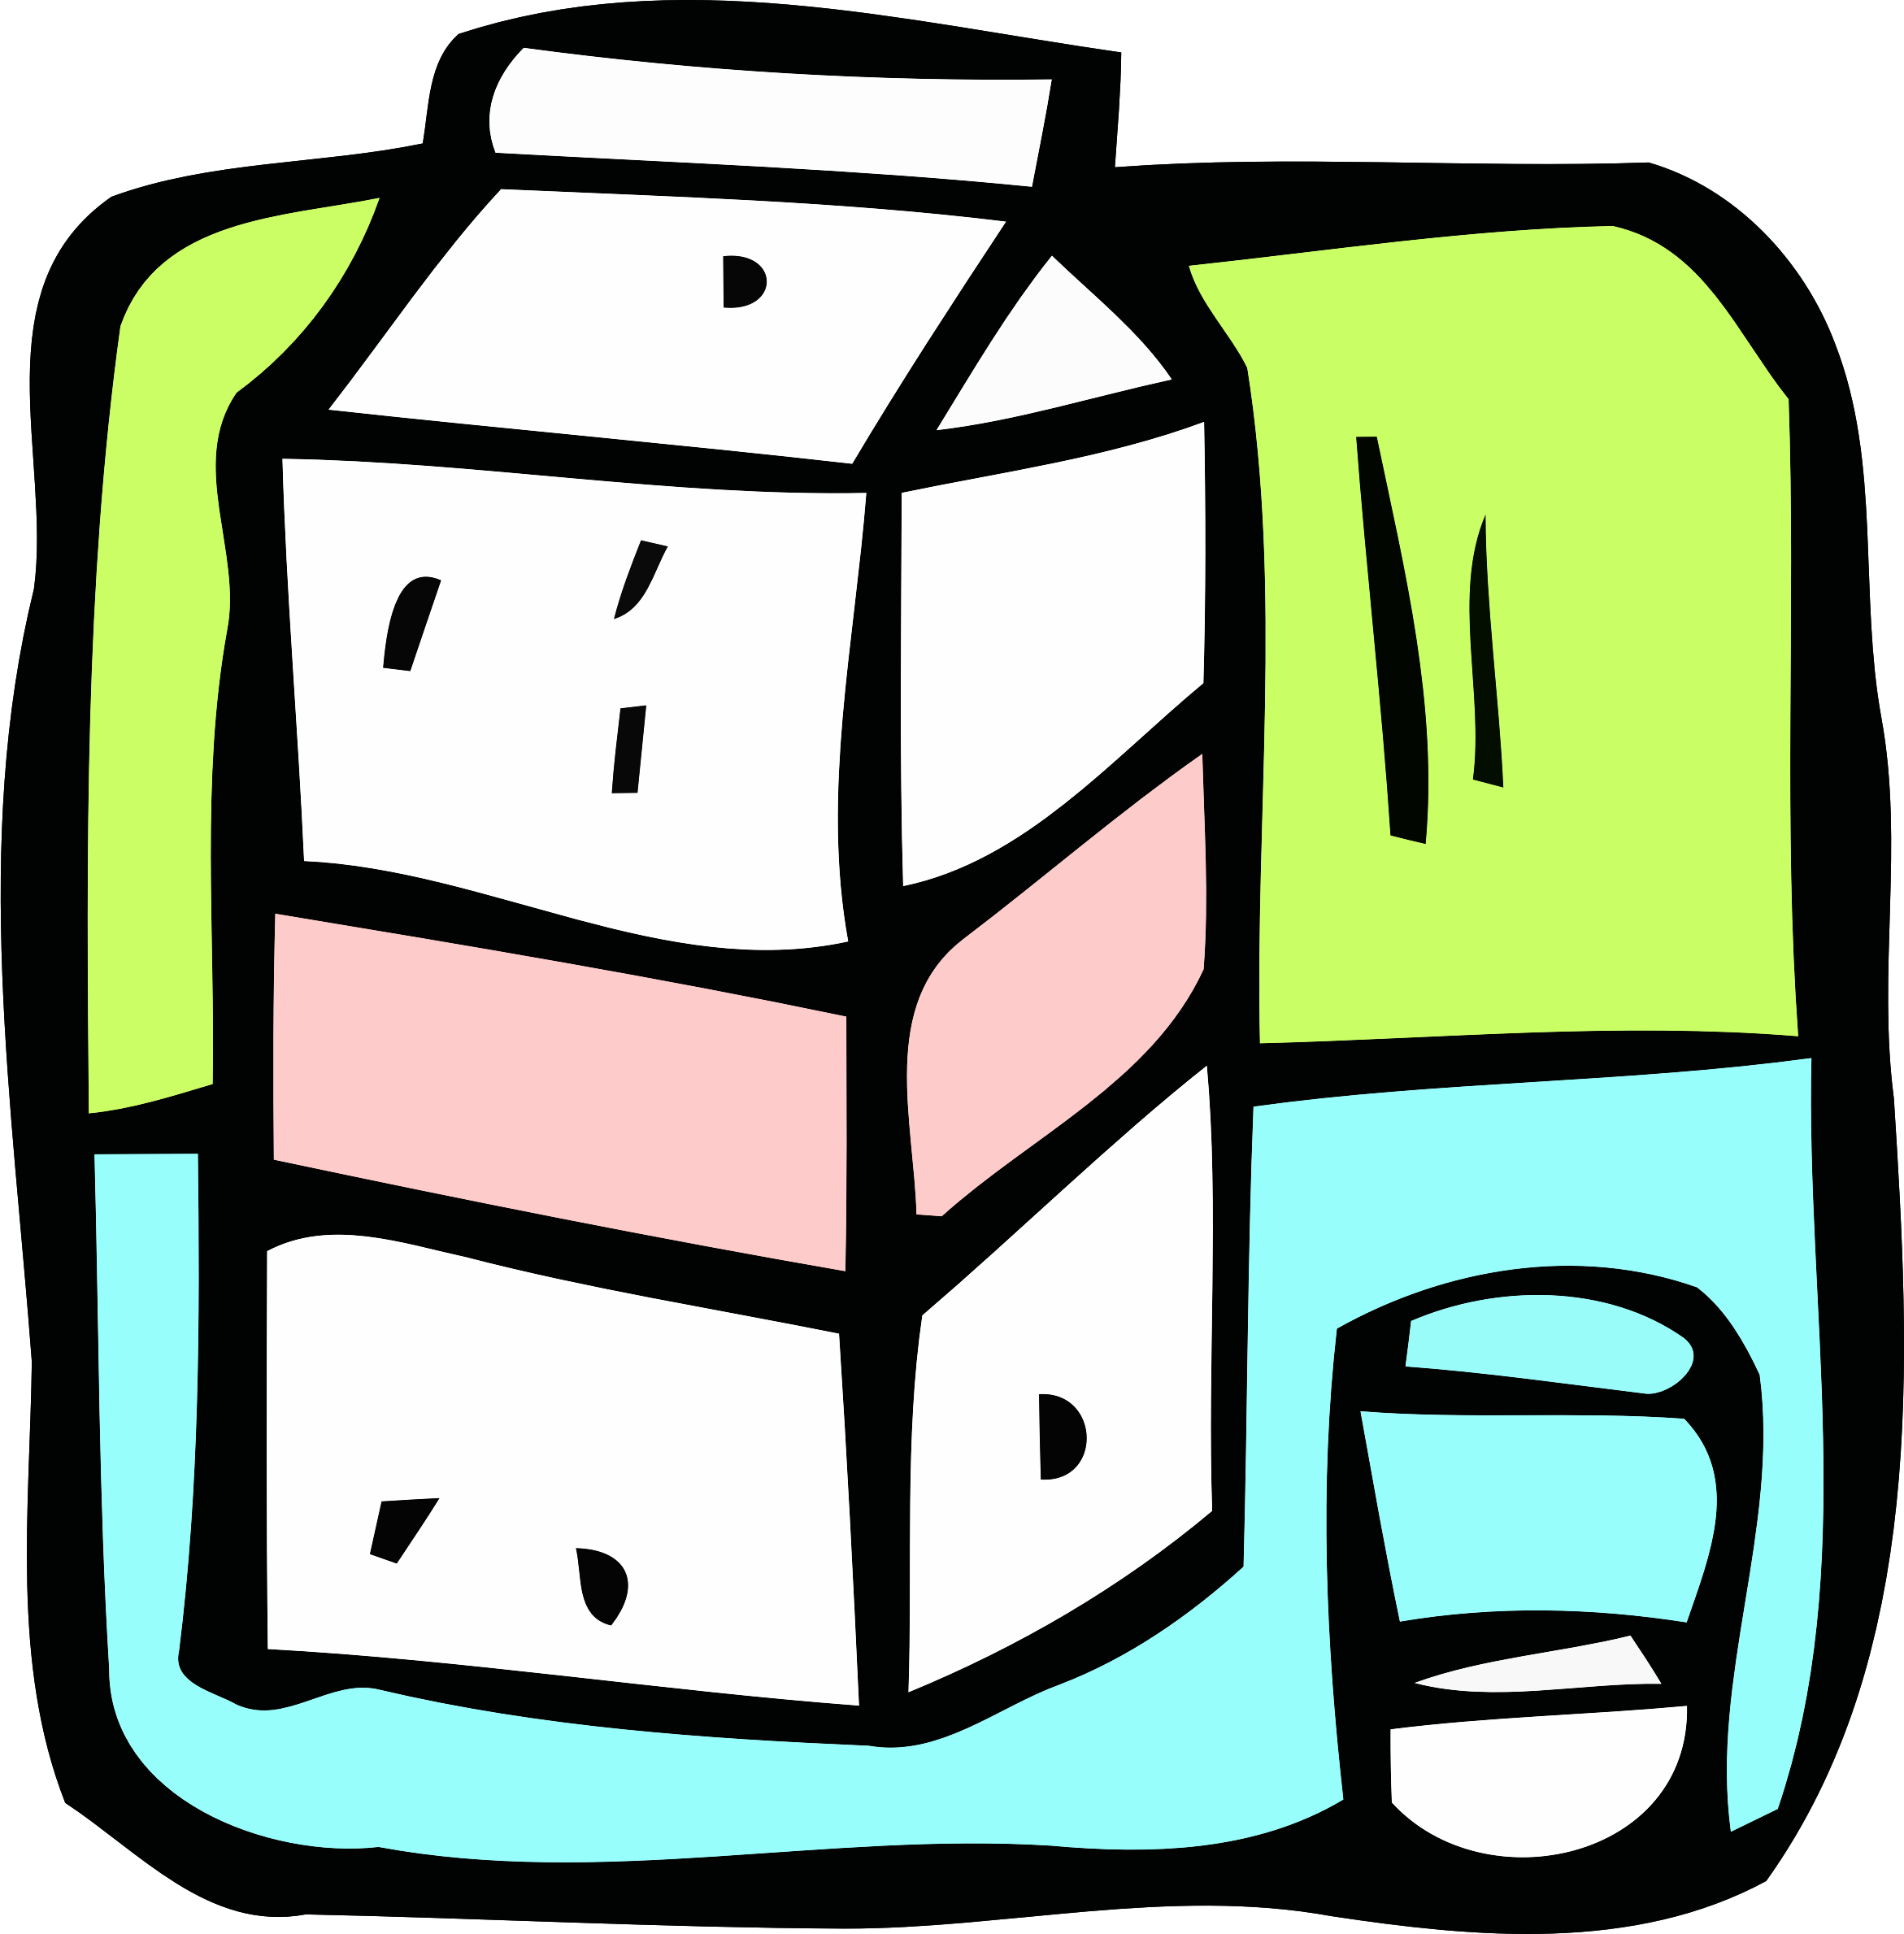 Food and drink icon - milk by Firkin